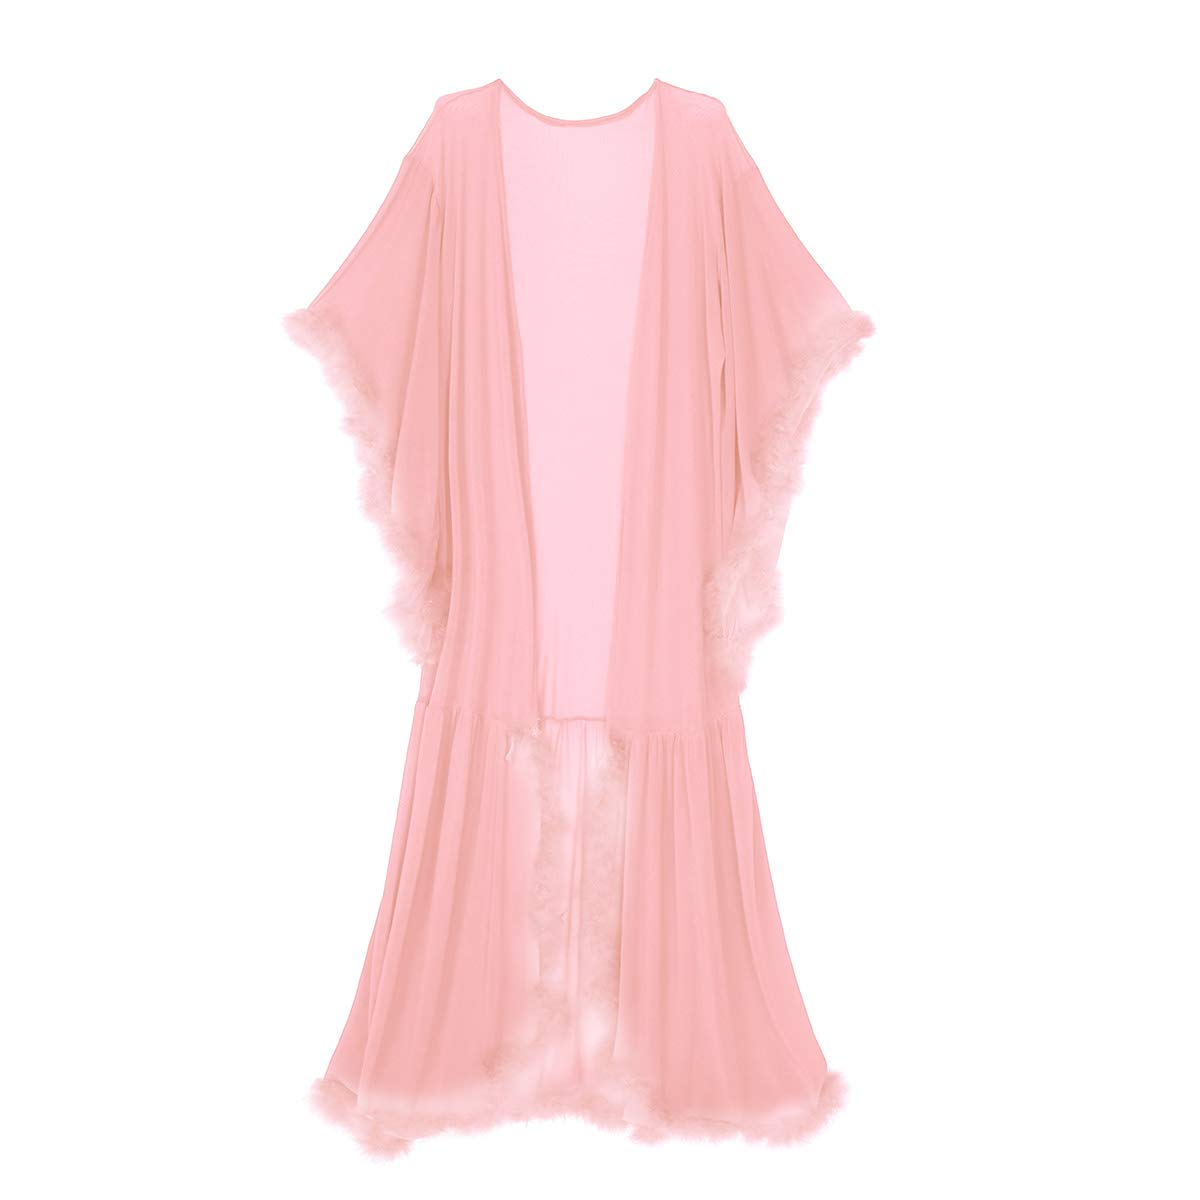 Amazon.com: Agoky Sexy Tulle Illusion Long Lingerie Robe Feather Bridal Robe Wedding Scarf Nightgown Bathrobe Sleepwear for Women Coral Pink One Size: ...